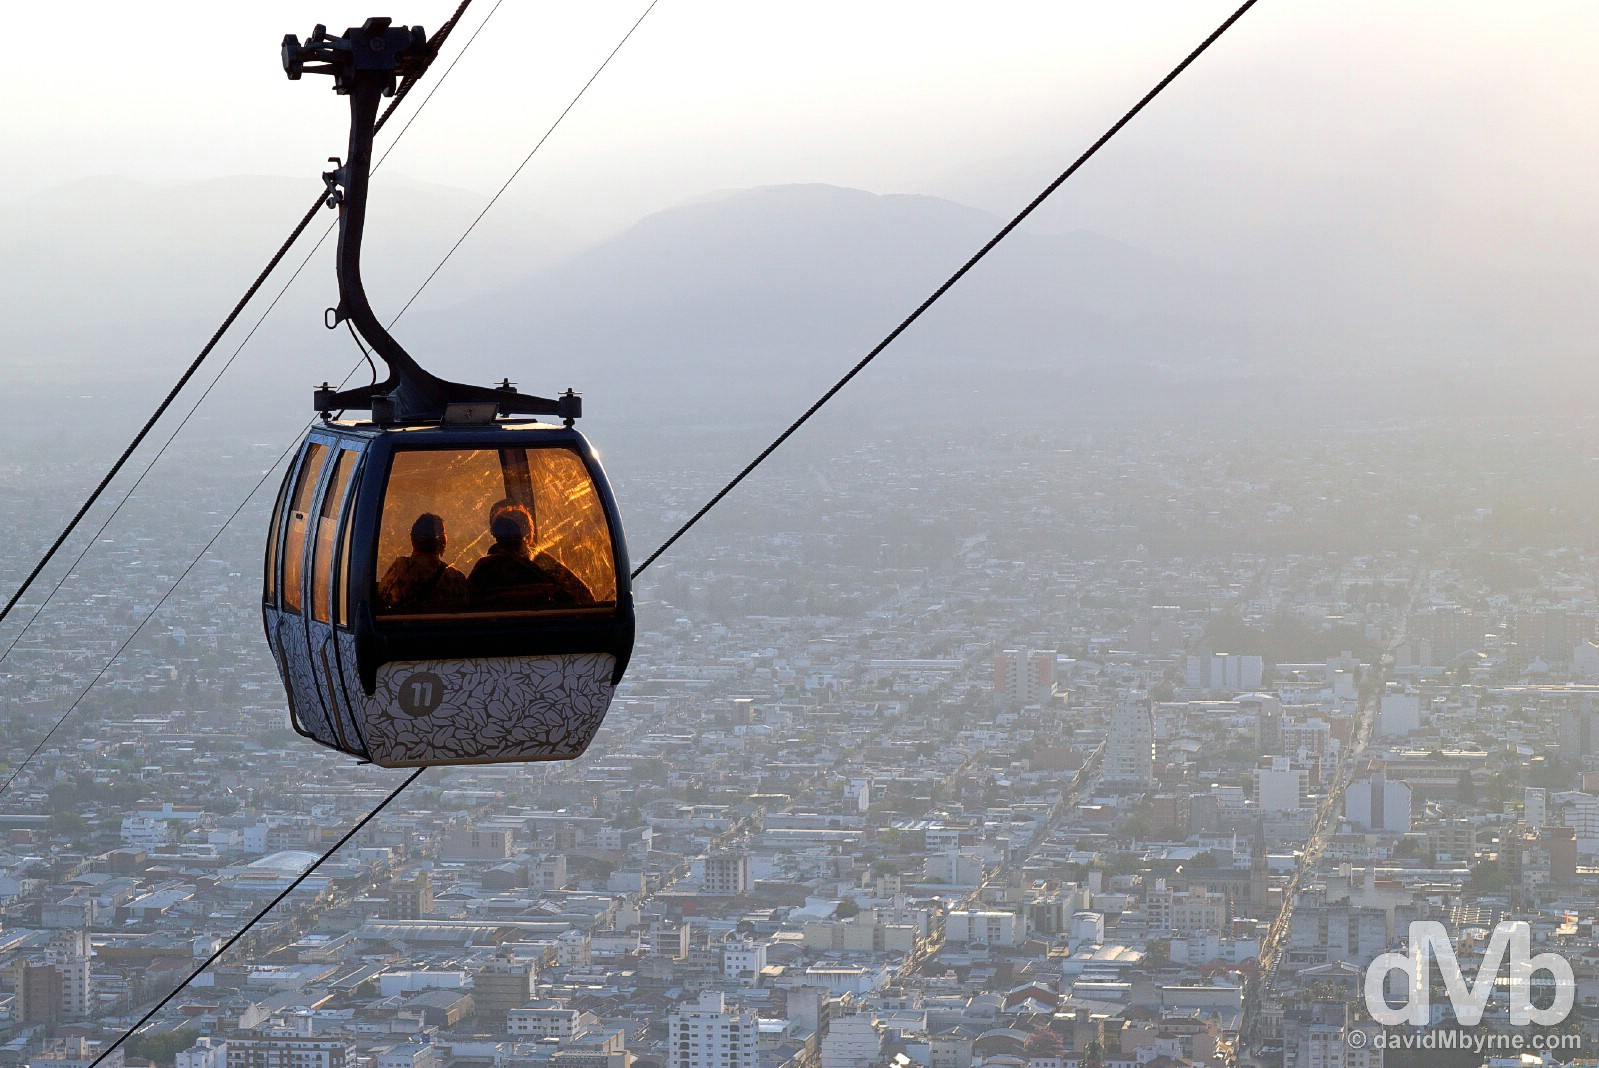 Riding the Teleférico San Barnardo cable car overlooking Salta, northern Argentina. September 6, 2015.